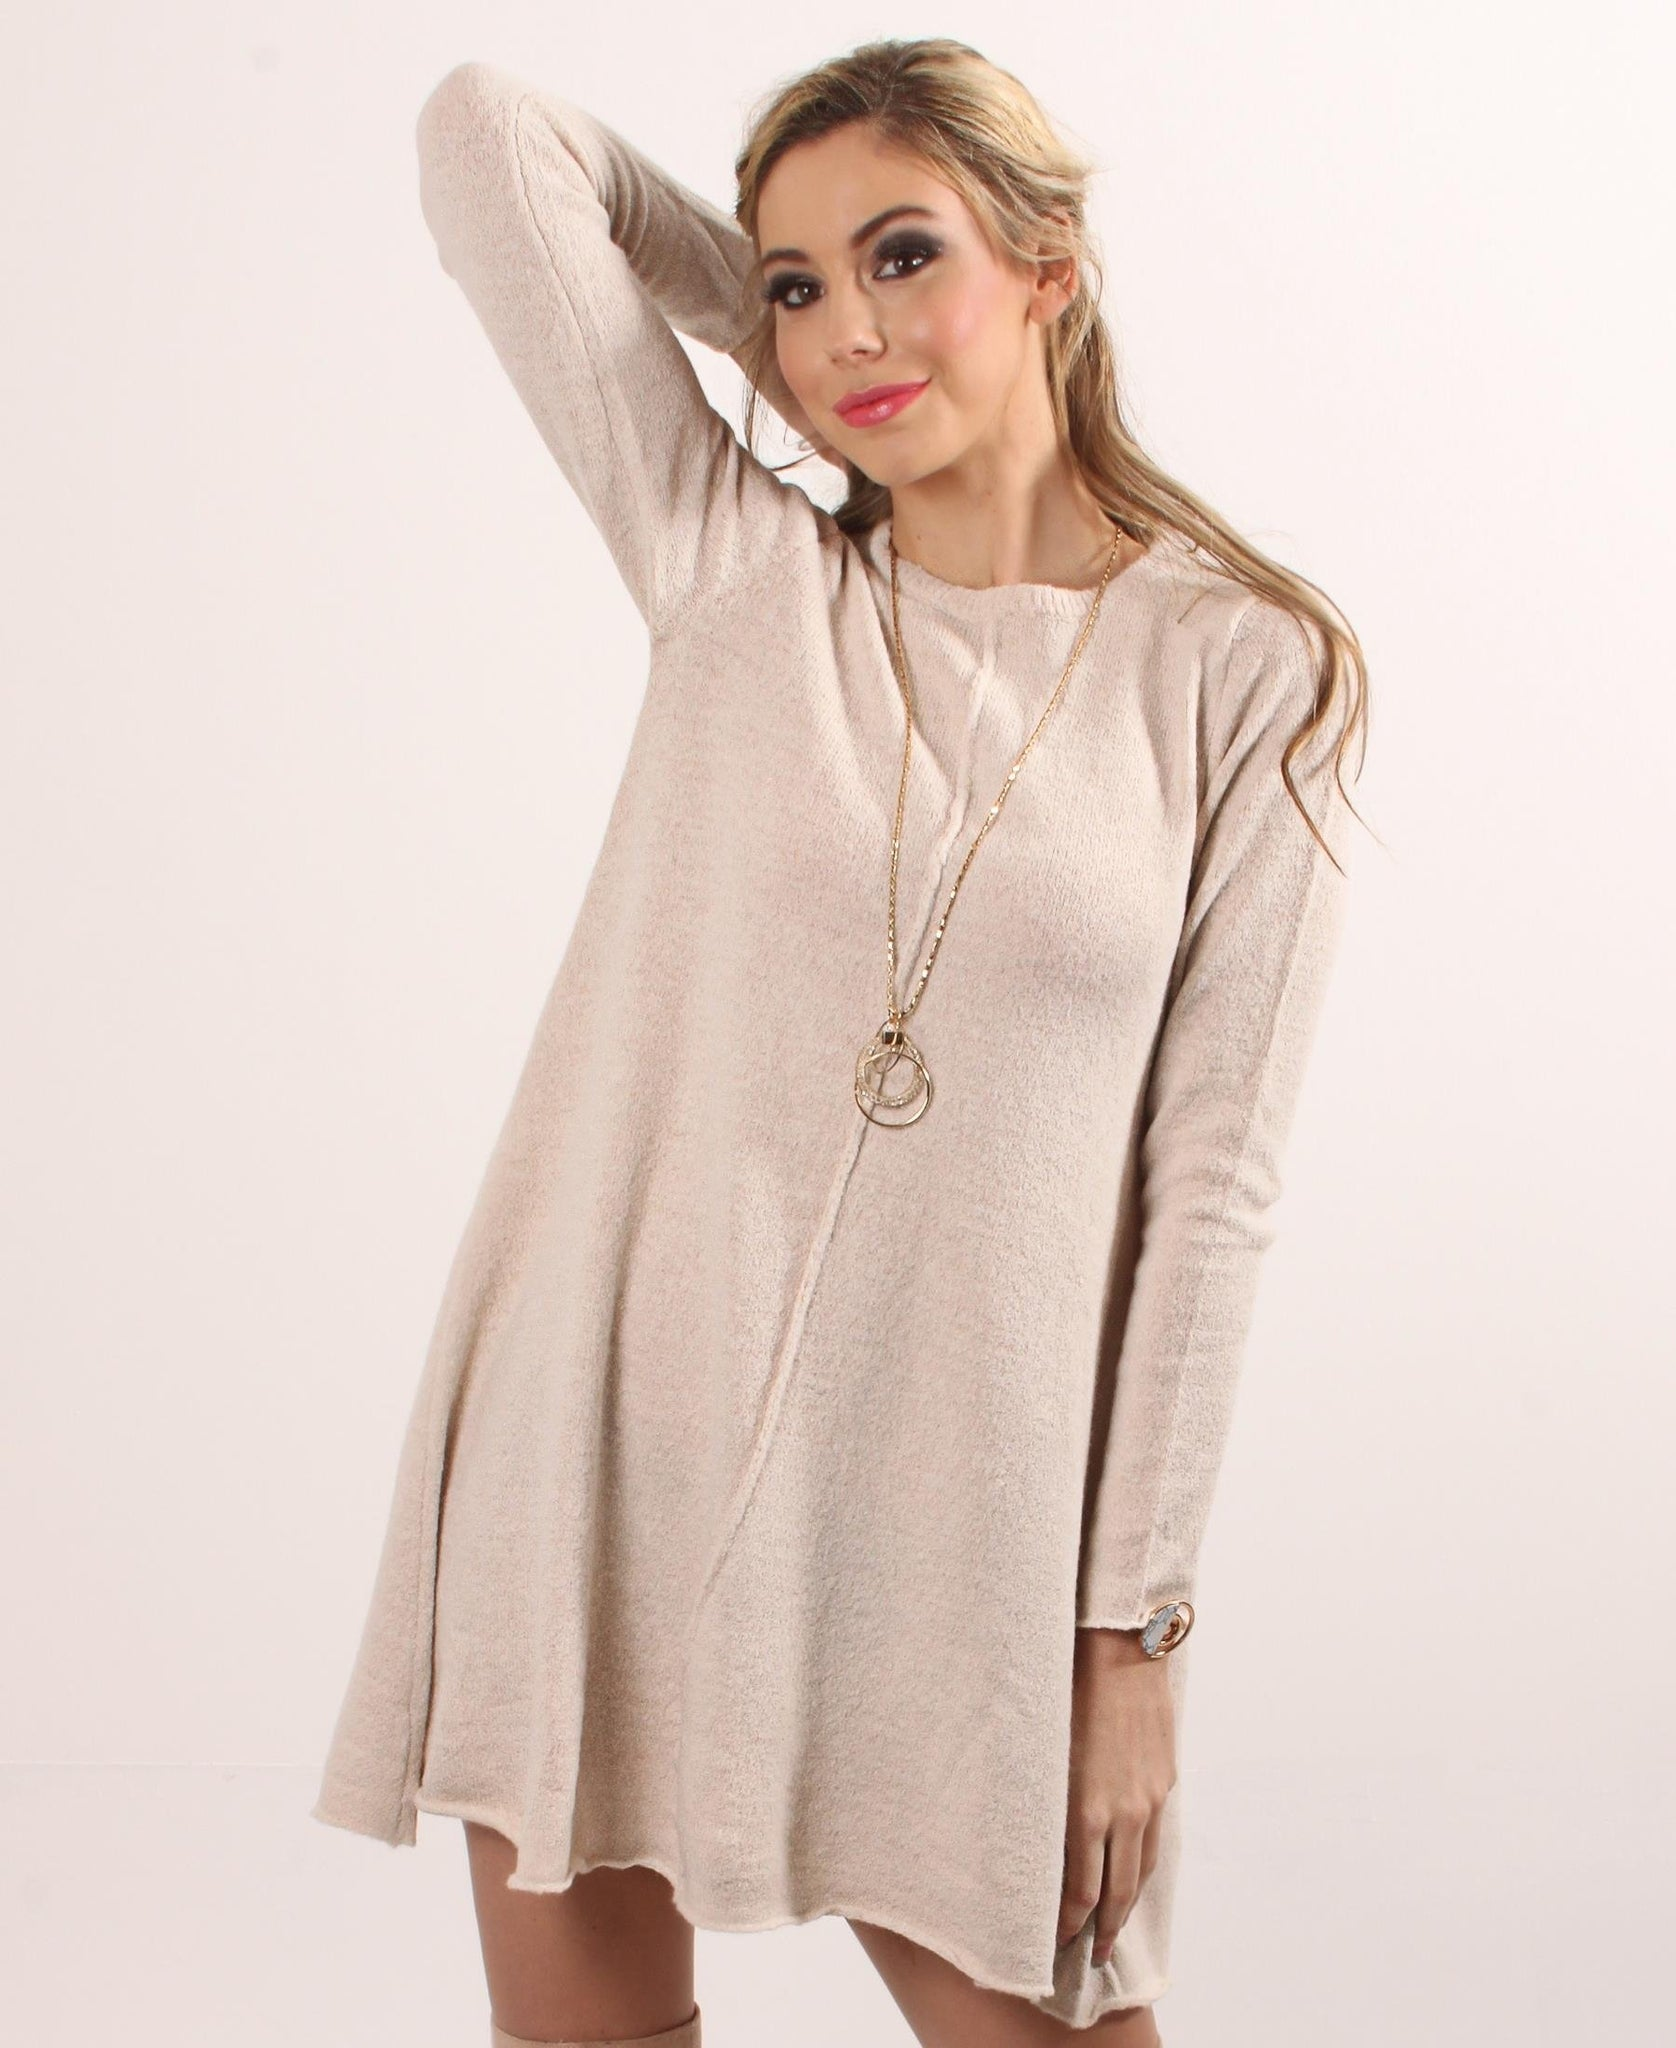 Long Sleeve Jersey Knit Dress - Beige